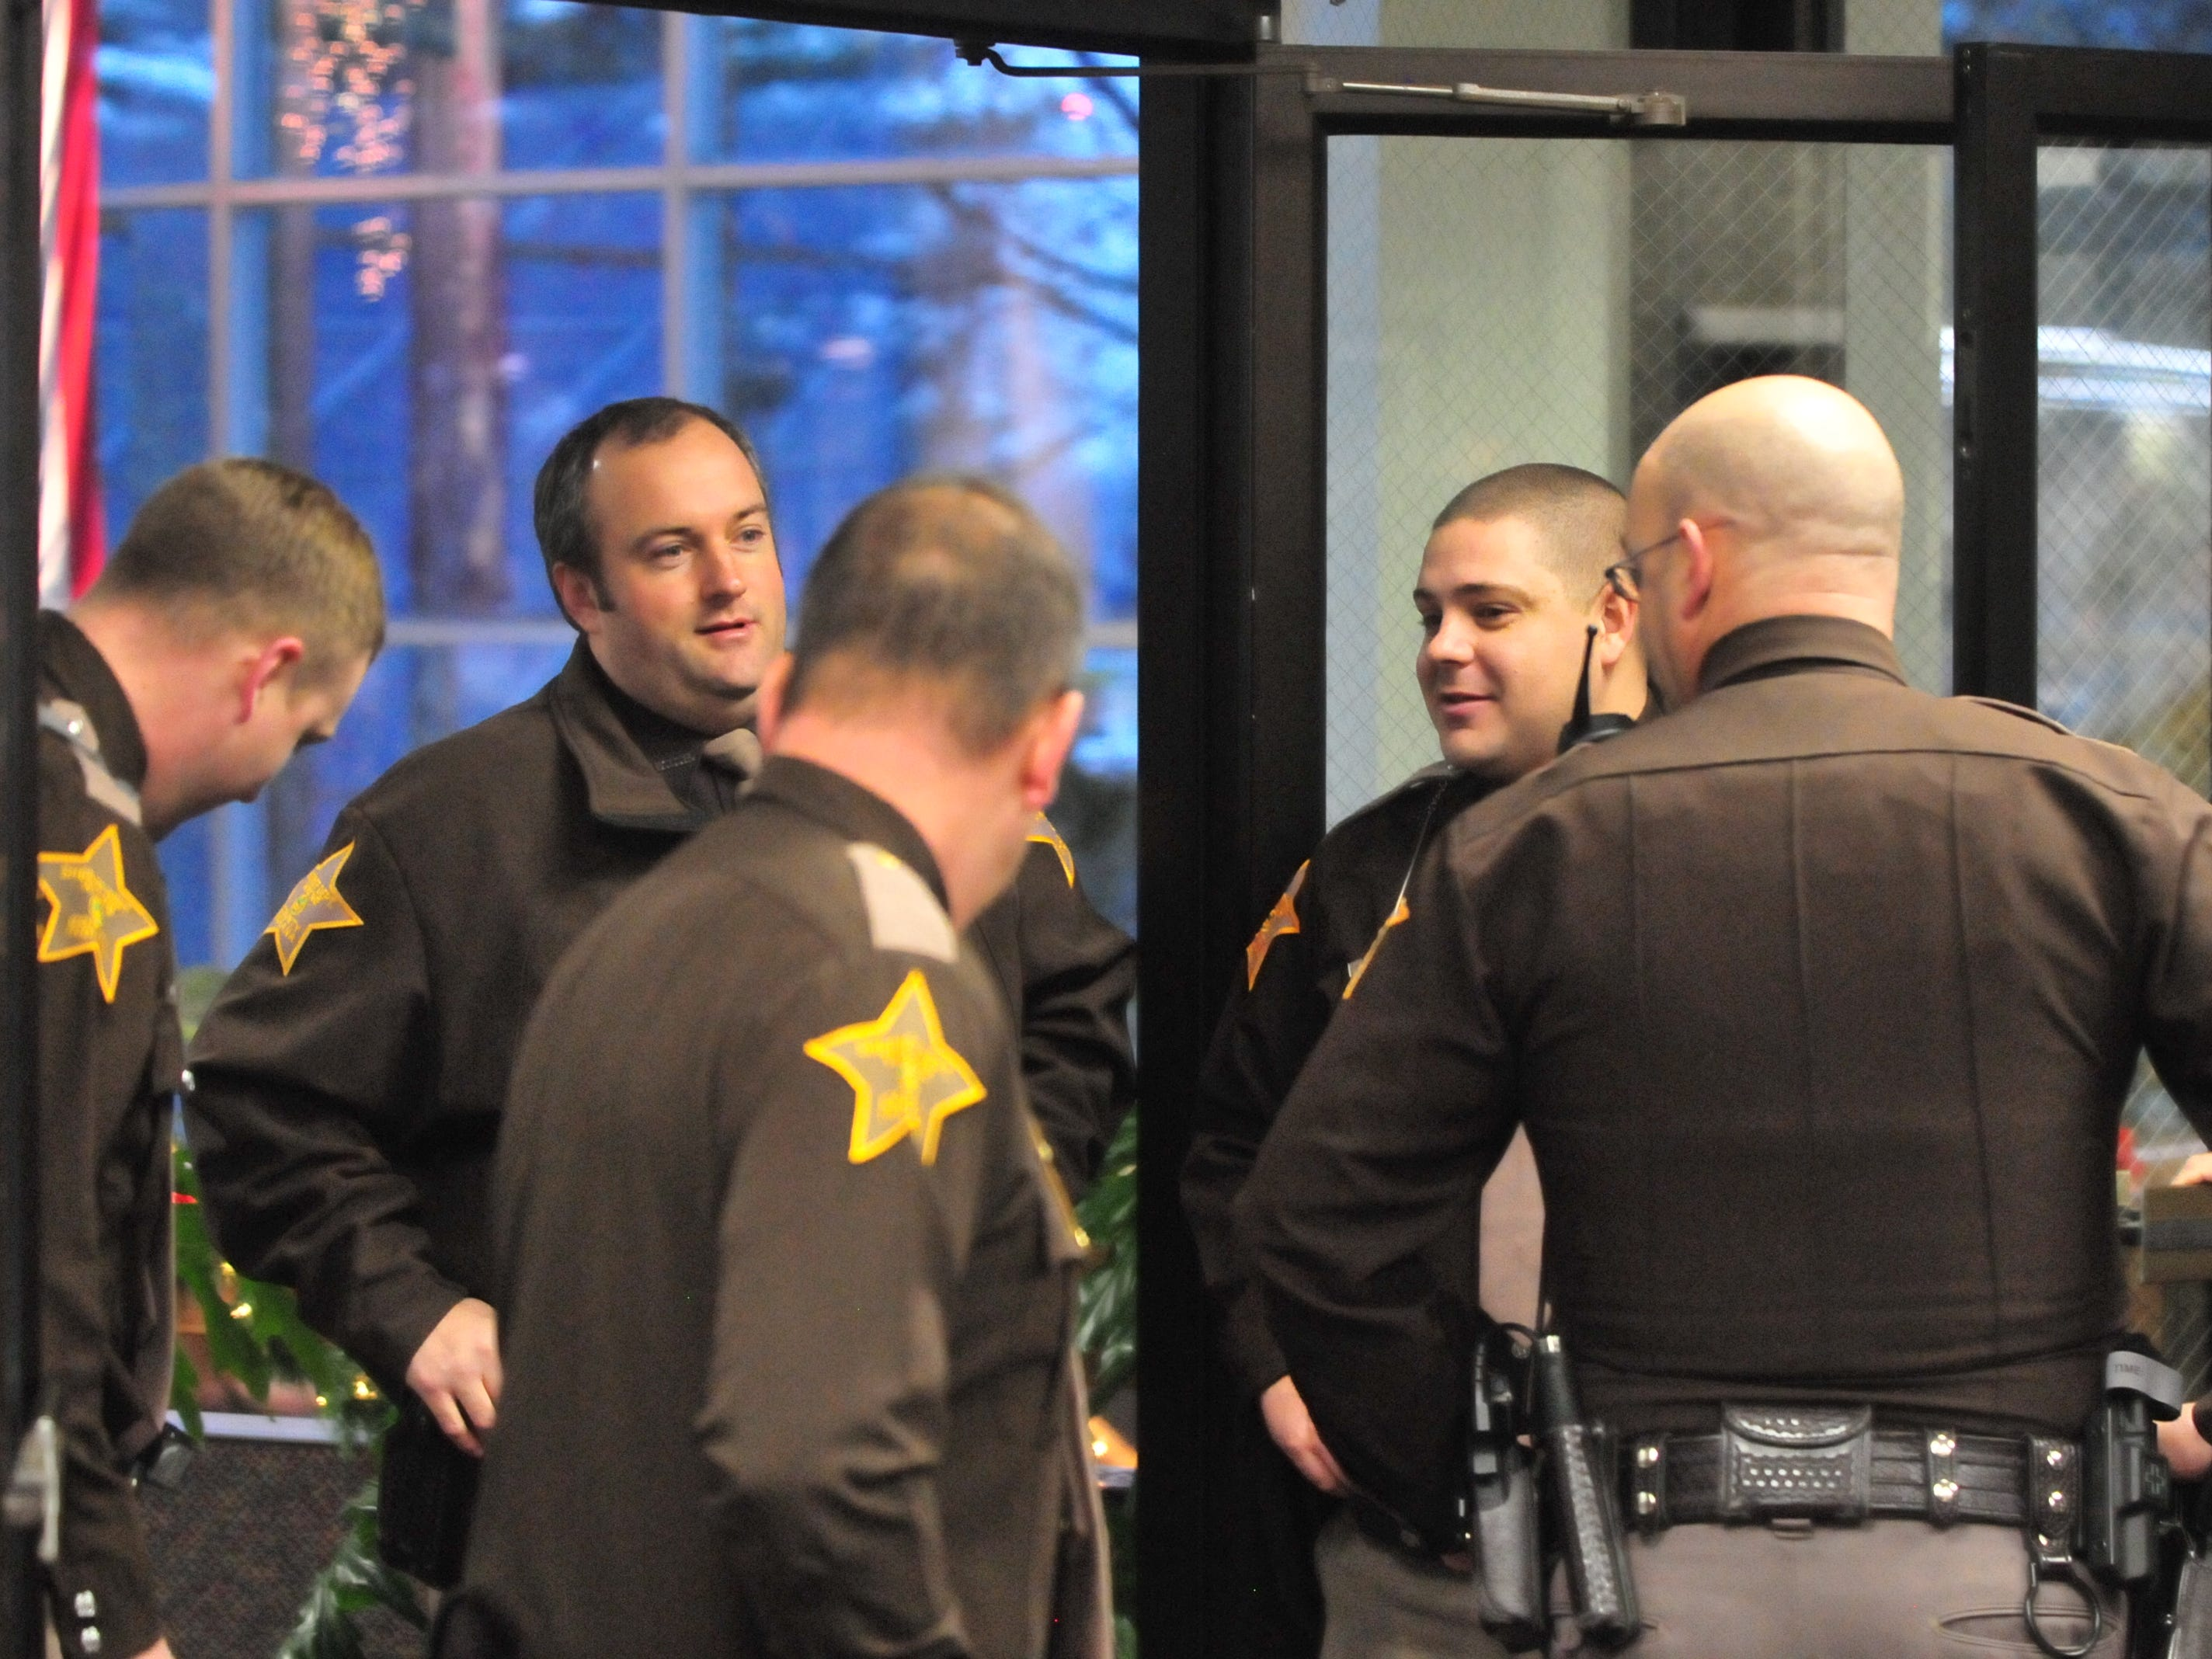 Wayne County Sheriff's Office personnel visit Friday prior to a group swearing in ceremony.